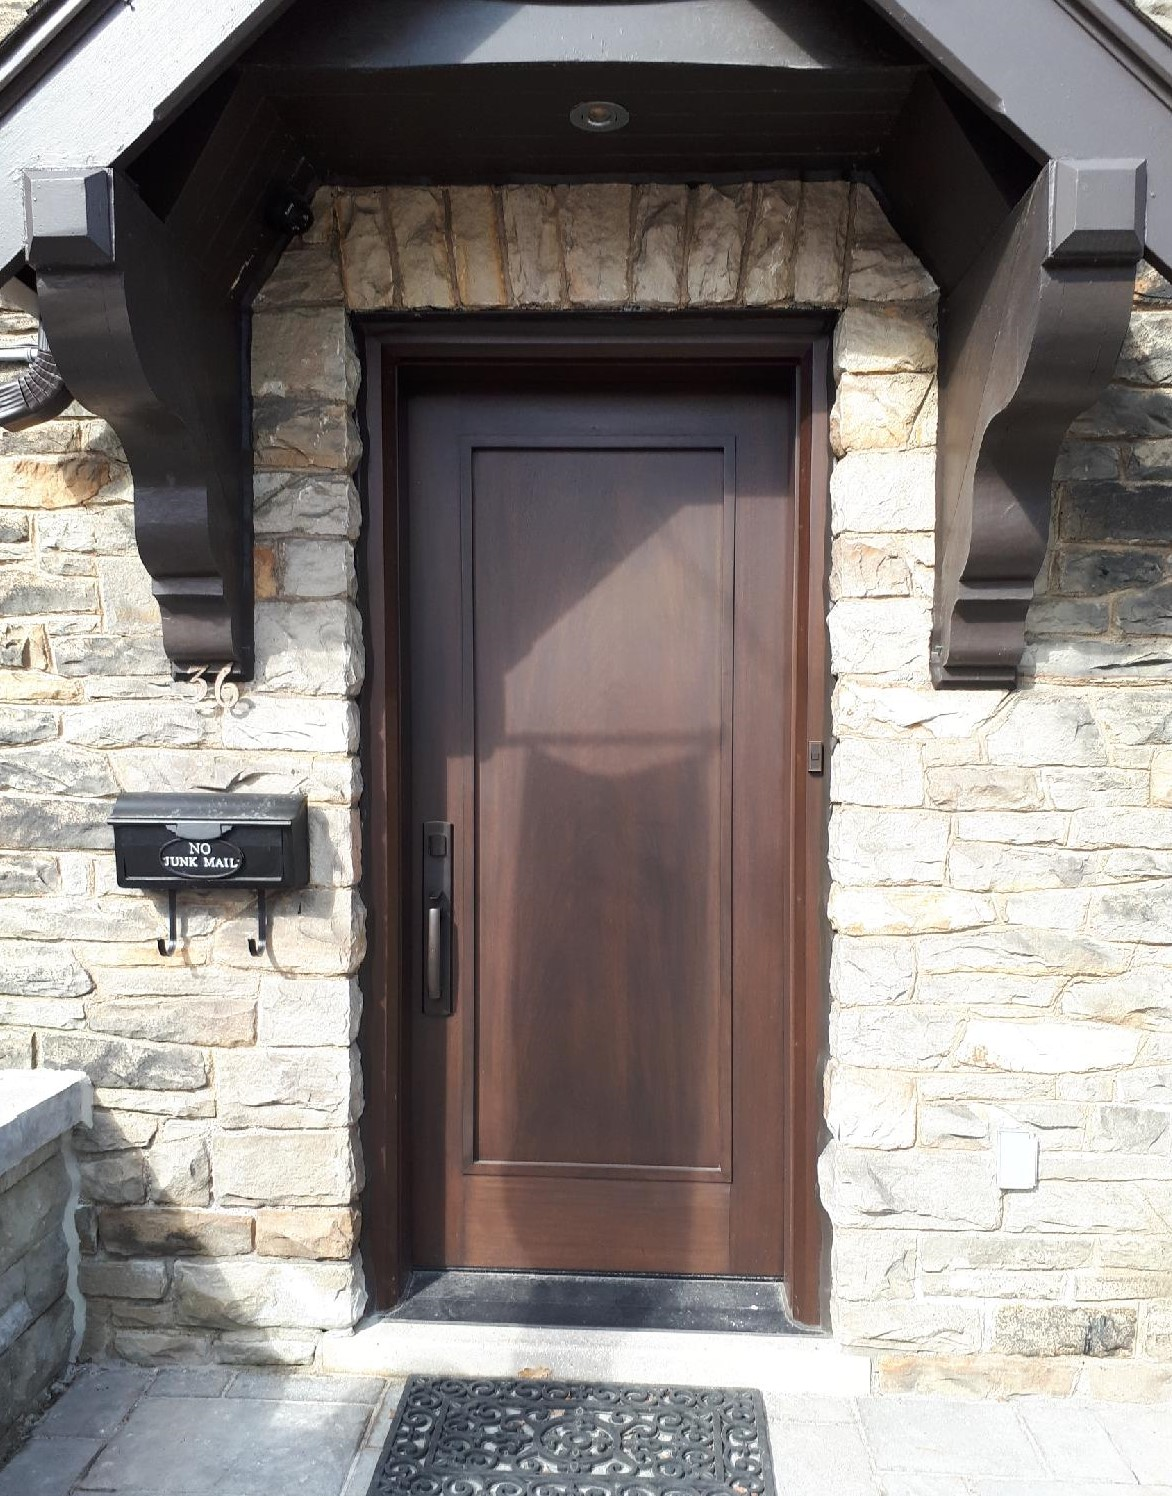 Proud to bring you #Doors that is made right here #MadeinCanada, #Toronto #SolidWood, #Mahogany, #CustomMade, #EntryDoor.#DistinctiveLo­ok, #FityourHome Made by #NorthwoodDoorsInc. Your best value and quality, #HandCraftedDoors. Every door #Manifactured by us has our corporate stamp - a testament to our dedication and passion in #Woodwork. Let #NorthwoodDoorsInc. add to your home's #CurbAppeal by enhancing the quality and beauty of your #EntryDoor. Visit our #Showroom to envision how one of our many doors on display might look like at your home. Contact us today Tel. 416-253-2034, info@northwooddoors.com, www.northwooddoor.com — in Toronto, Ontario. — in Toronto, Ontario. — in Toronto, Ontario.